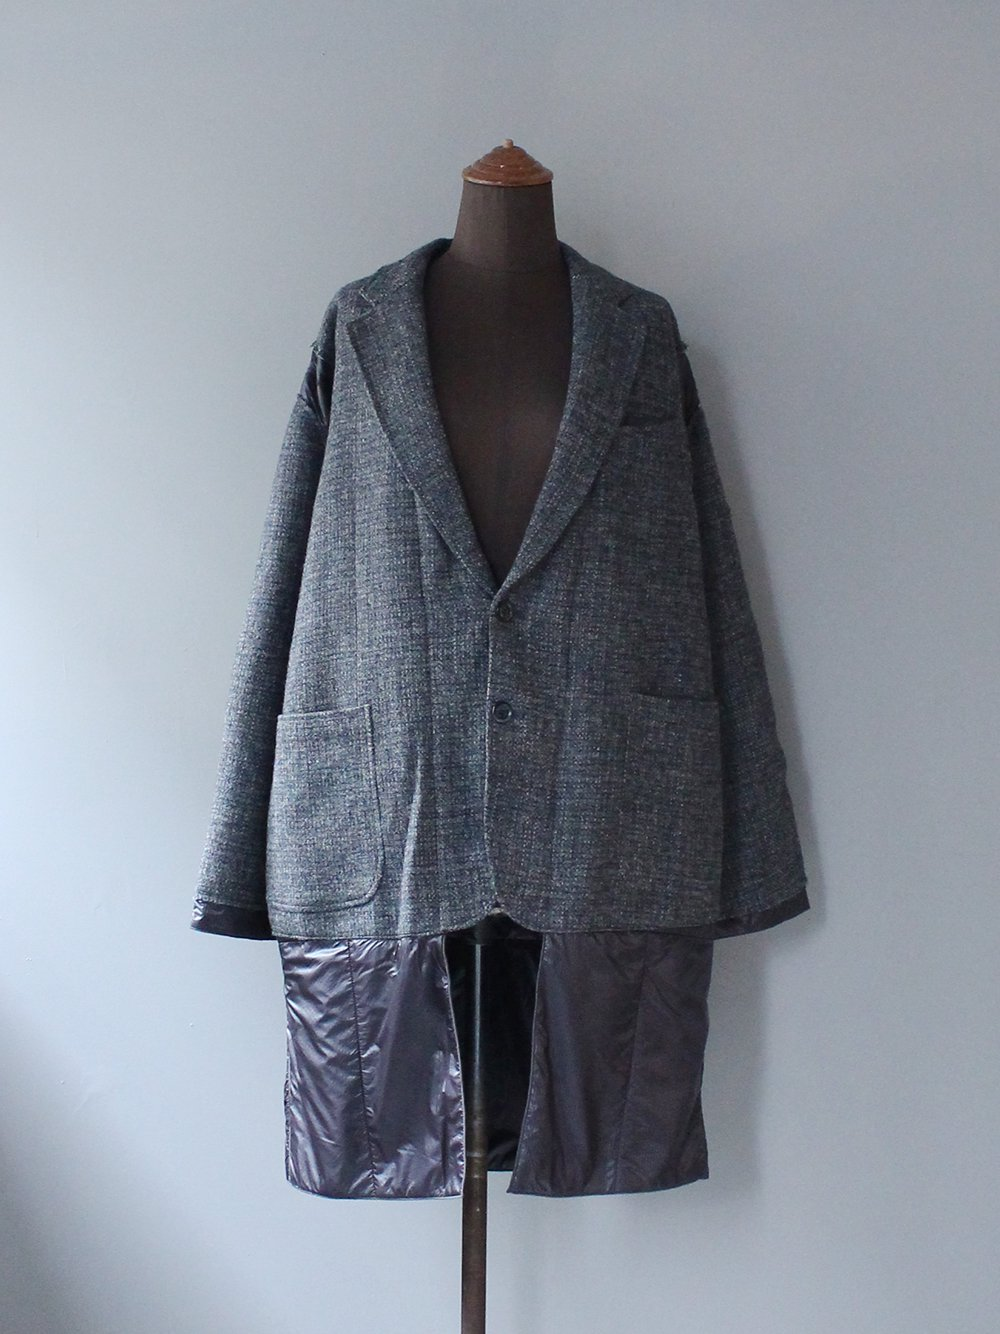 """<img class='new_mark_img1' src='https://img.shop-pro.jp/img/new/icons8.gif' style='border:none;display:inline;margin:0px;padding:0px;width:auto;' />Needles """" Tweed Jacket -> Covered Coat (assorted)"""""""